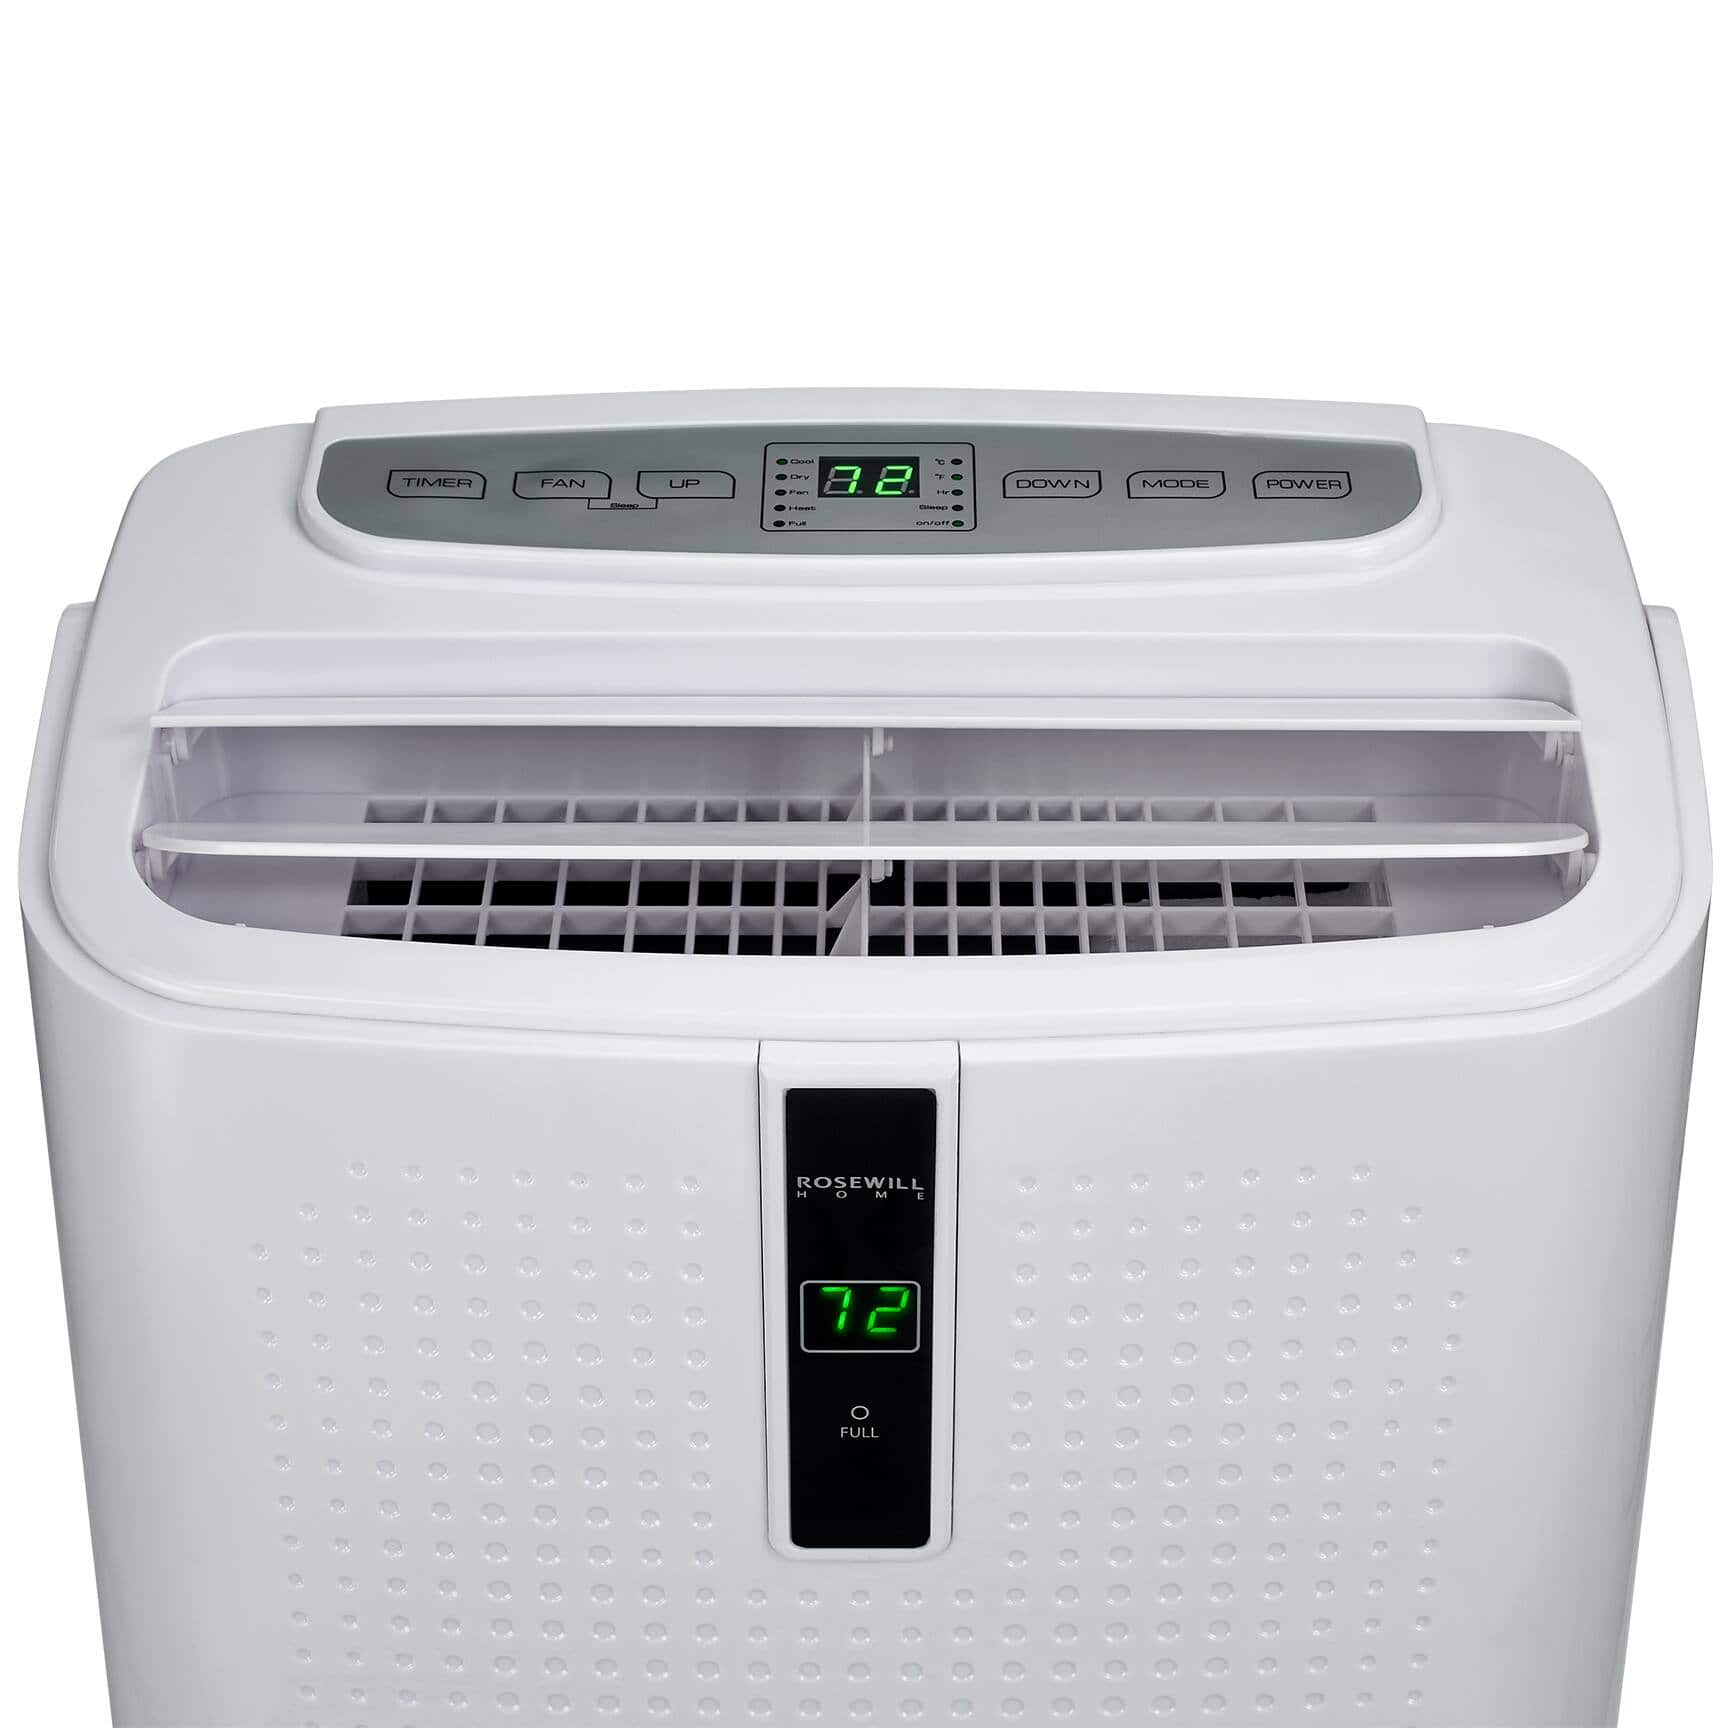 Rosewill 4-in-1 12,000 BTU Portable Air Conditioner $305.10 + Free Shipping